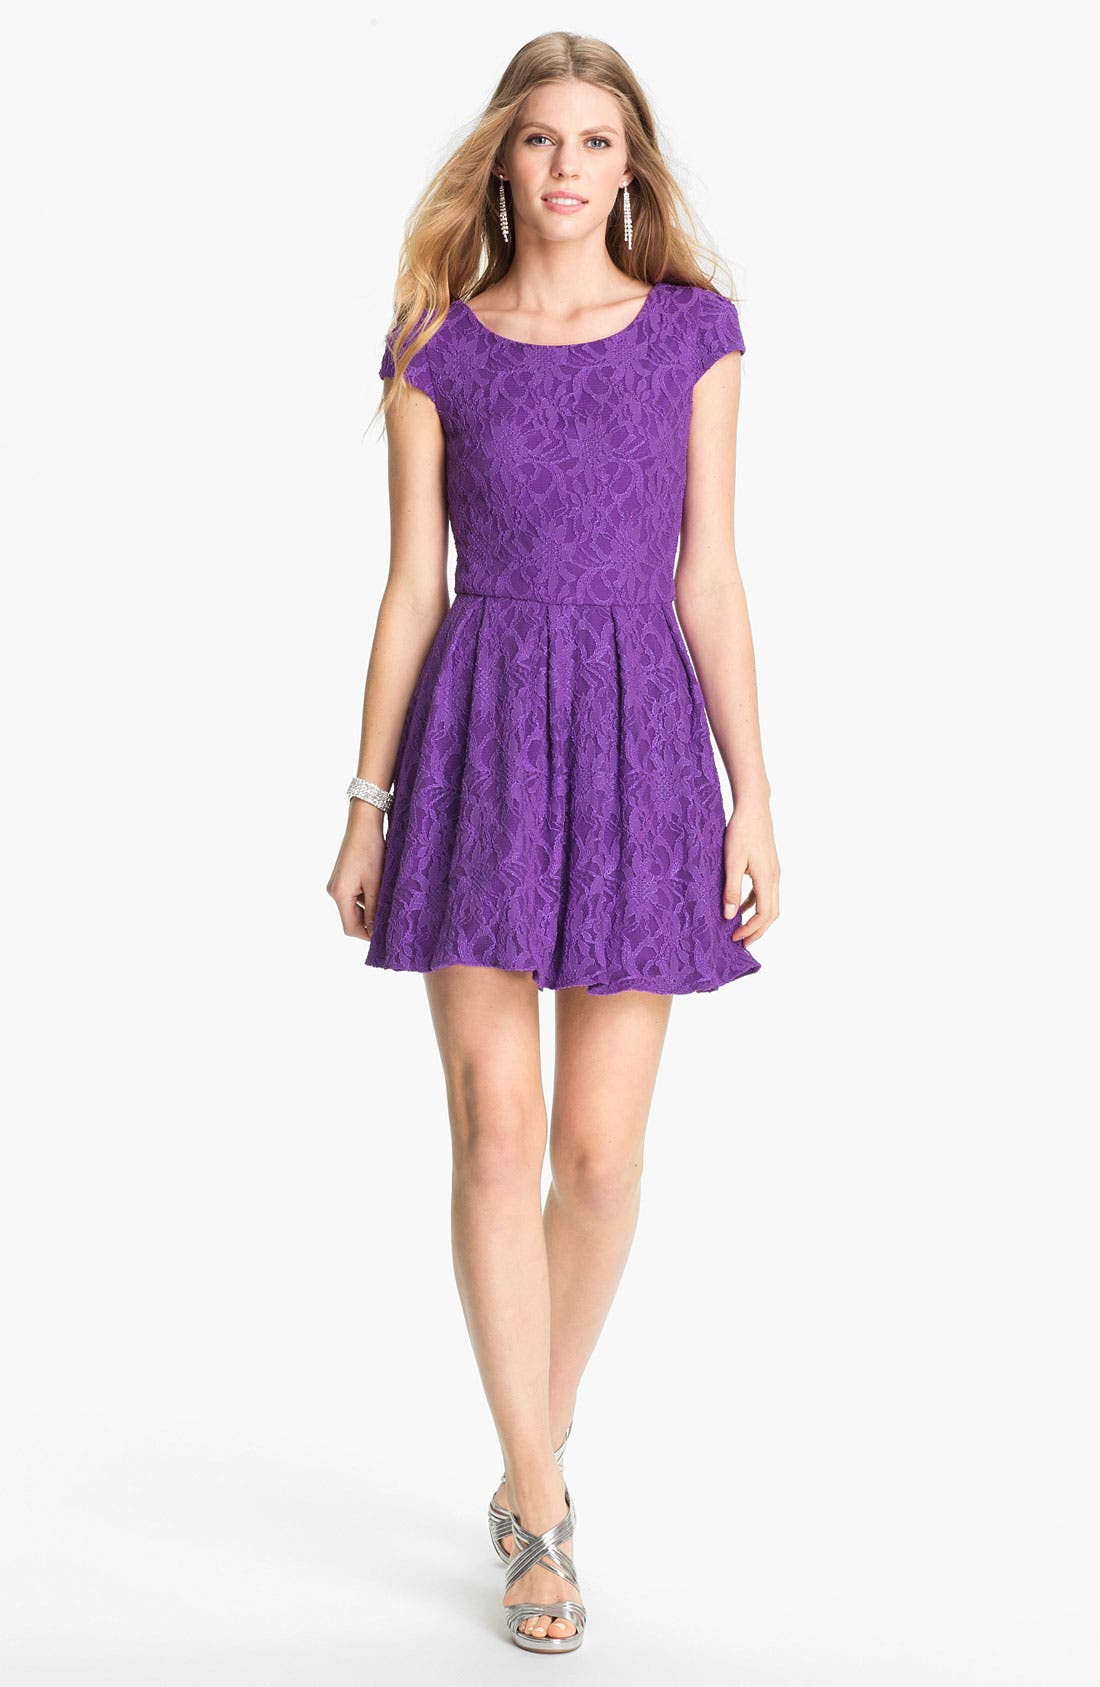 HAILEY BY ADRIANNA PAPELL,                             Lace Fit & Flare Dress,                             Main thumbnail 1, color,                             500